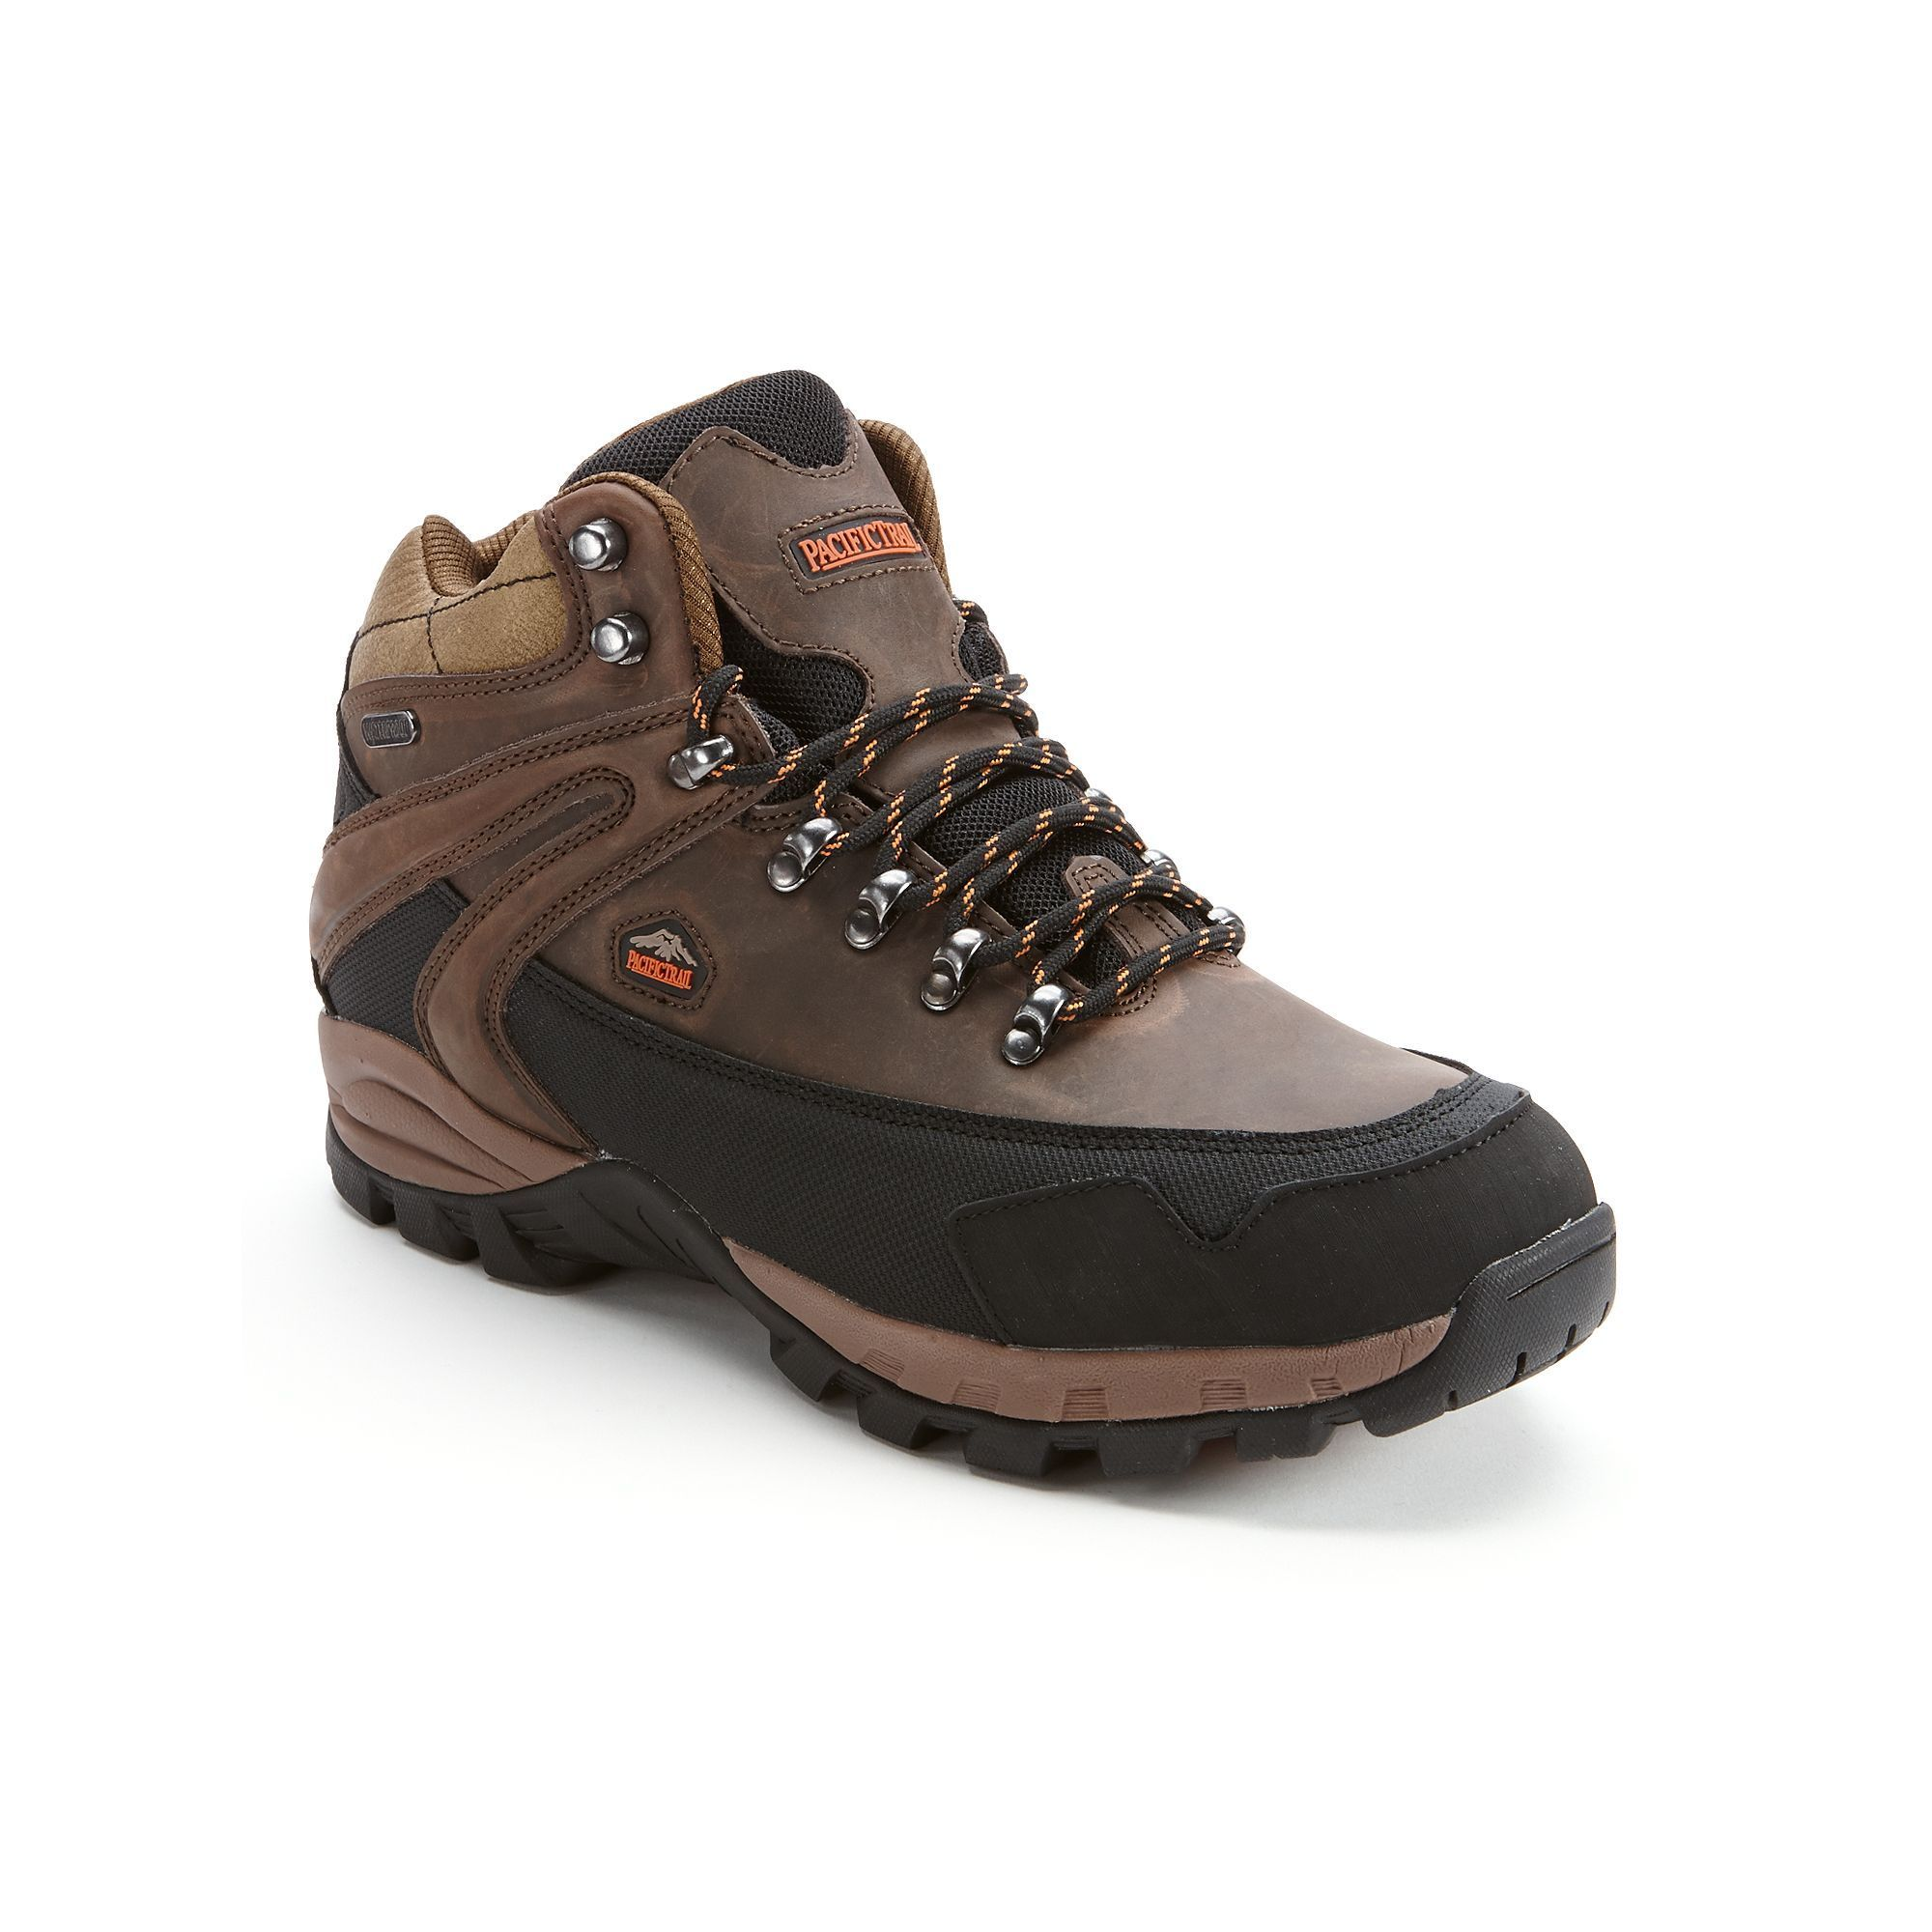 4cd521c2ea8 Pacific Trail Rainier Men's Waterproof Hiking Boots | Products ...